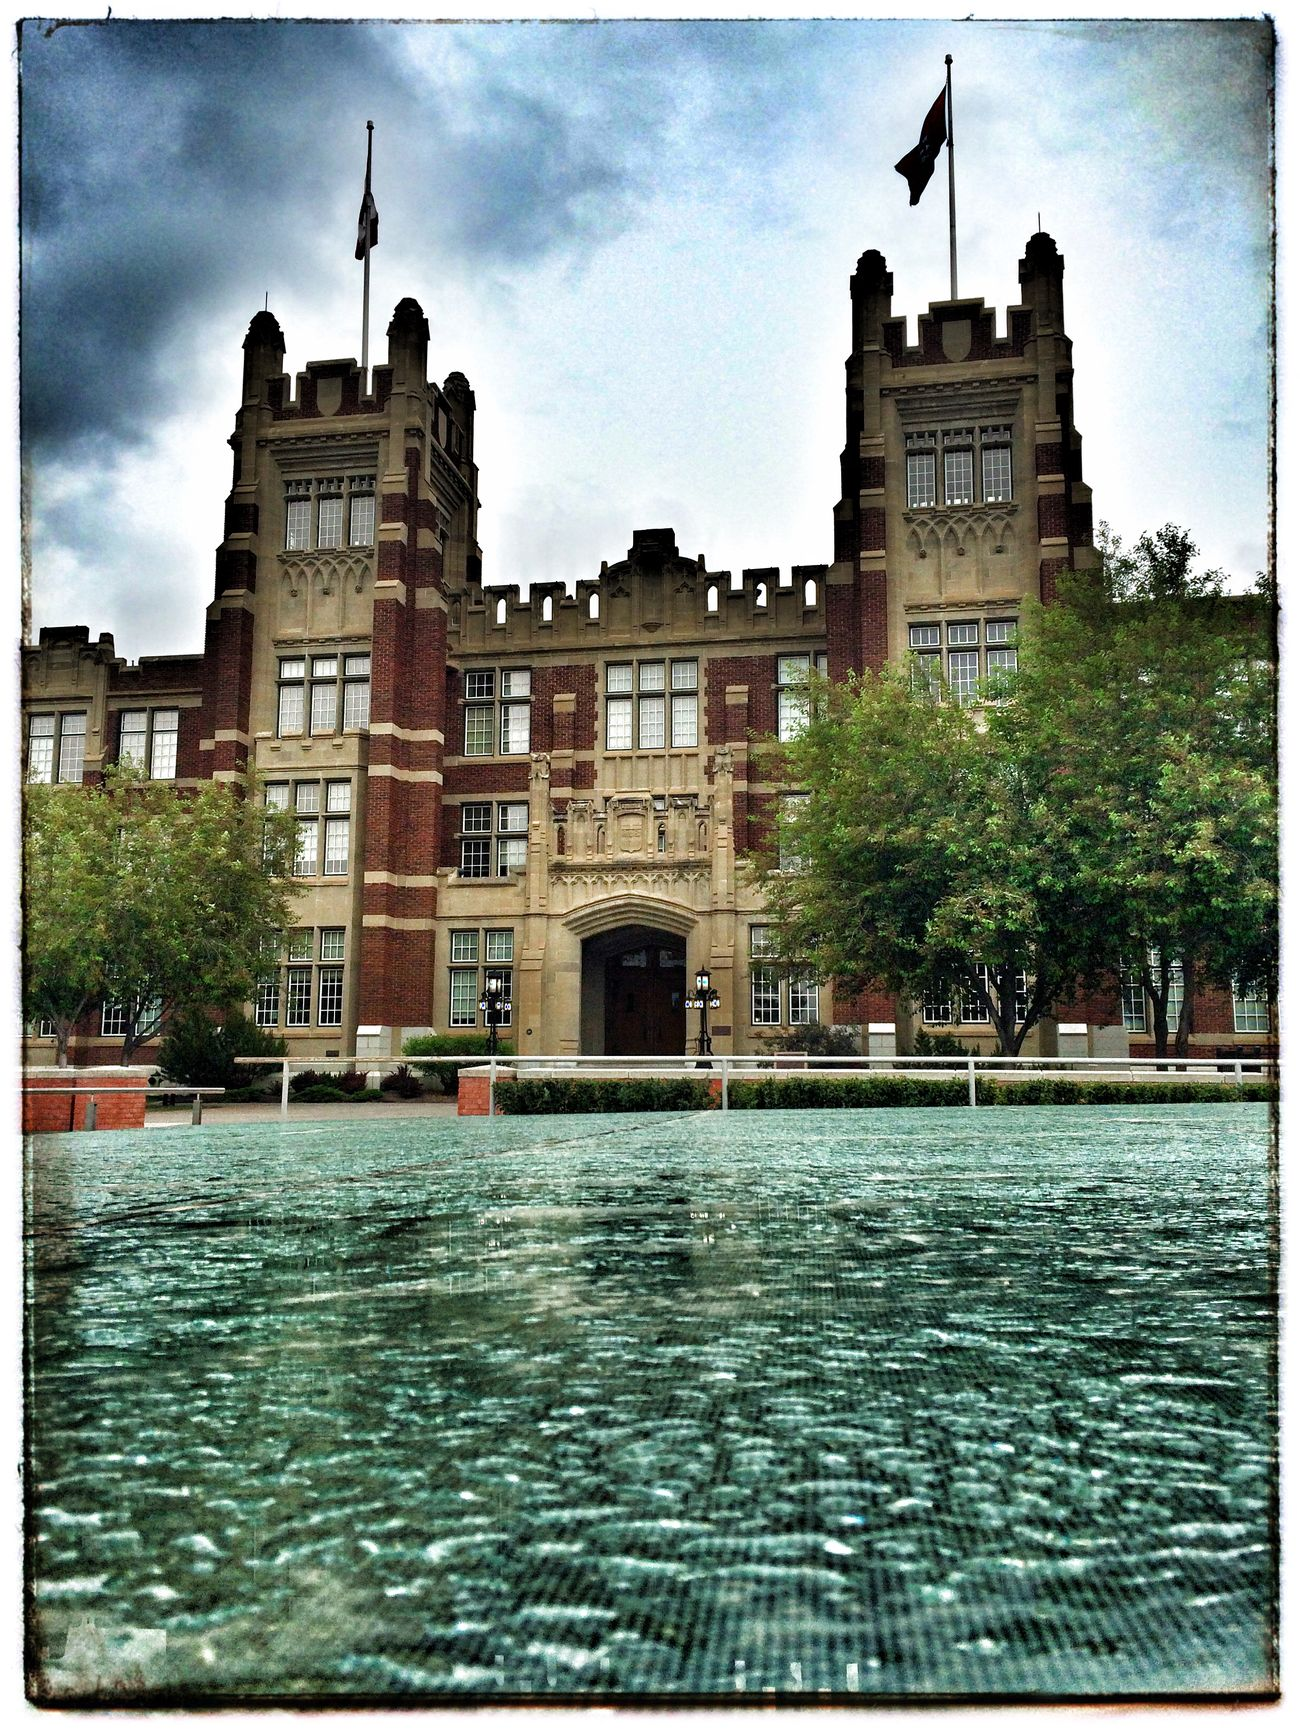 Rainy night on campus 2. Architecture Rain Project 365 Photography Photo Of The Day Iphone 5